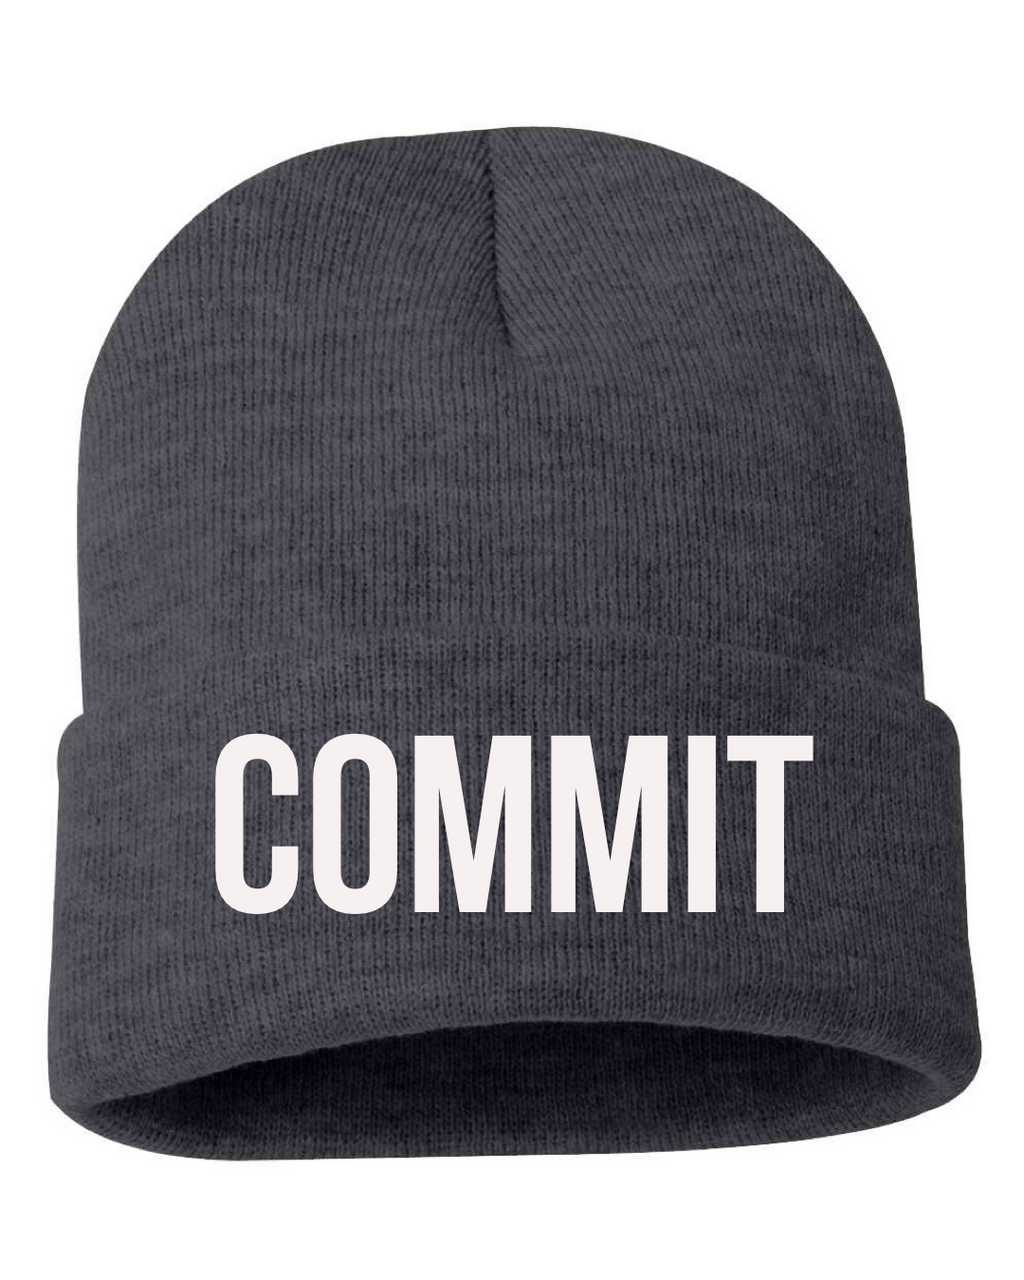 COMMT Knit Beanie - Grey/White